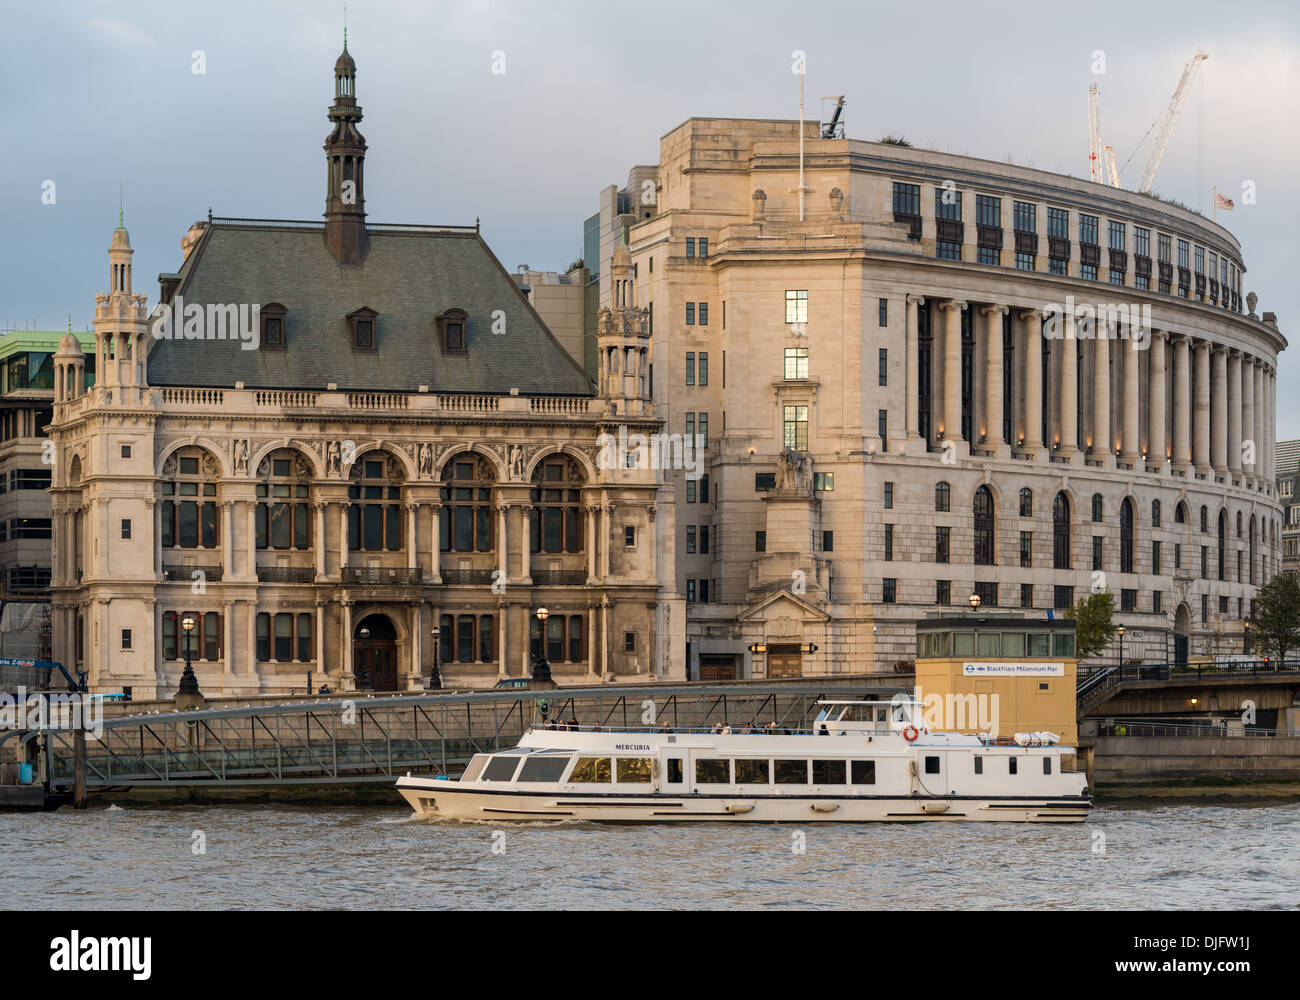 A Thames River Cruise passes by Unilever House and City of London School - Stock Image